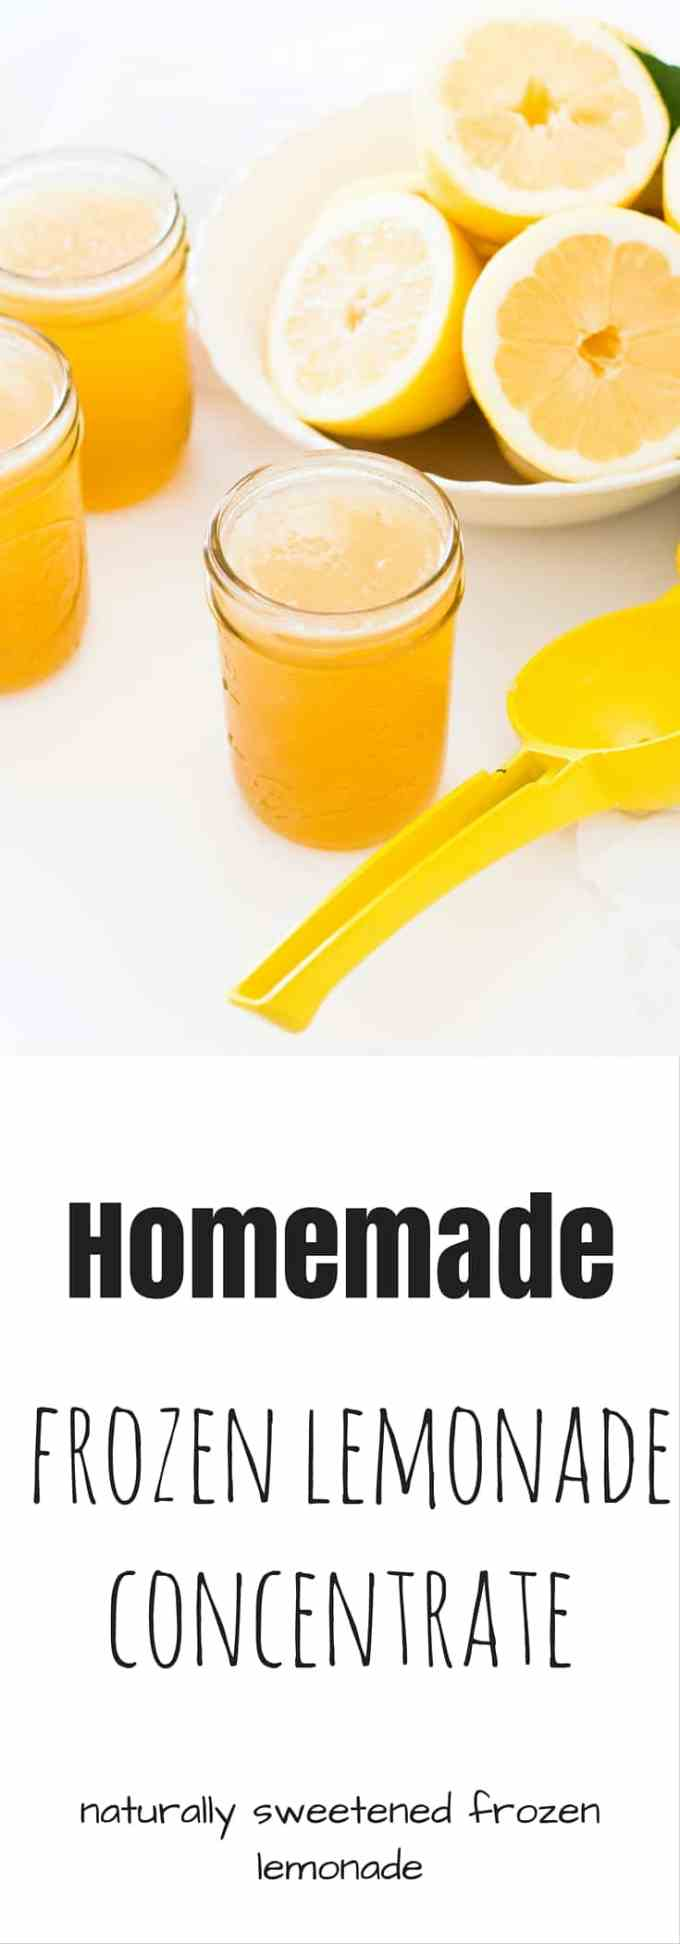 Be prepared for the warm weather with some frozen ice lemonade concentrate. Naturally sweetened and only 3 ingredients make this a great summer treat